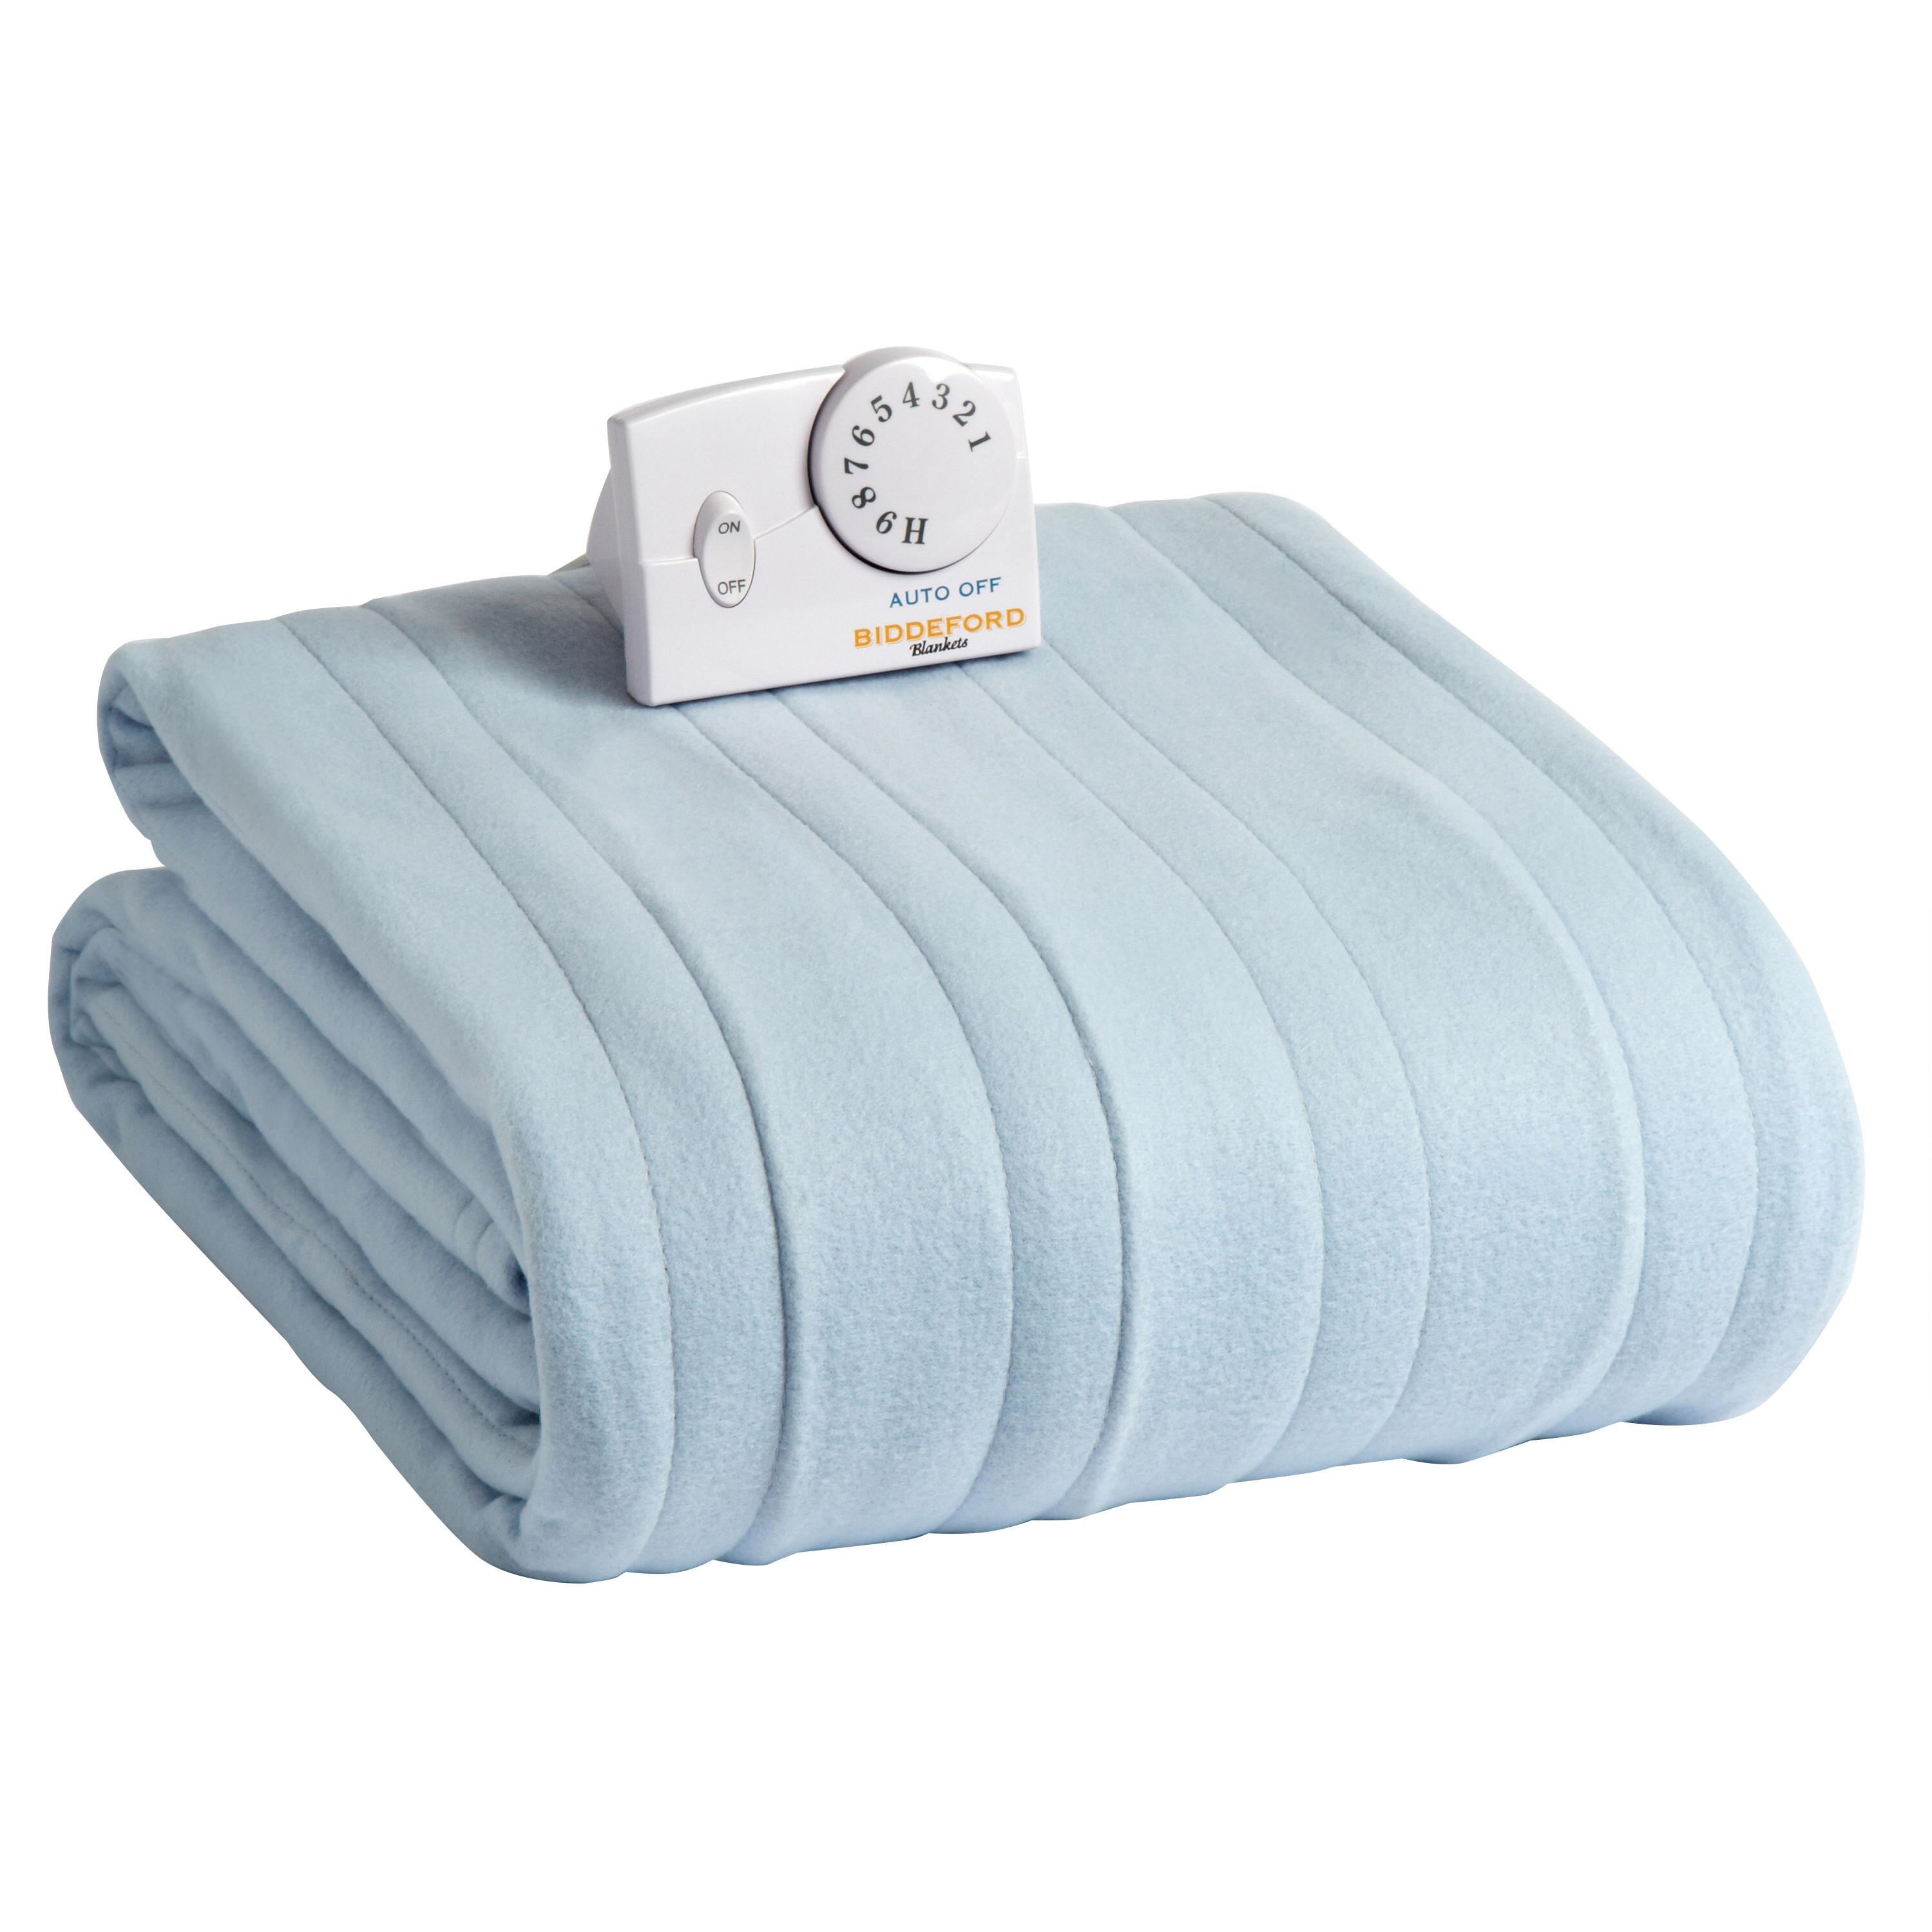 Electric Heated Blanket Christmas Tree Shops And That Home Decor Furniture Gifts Store